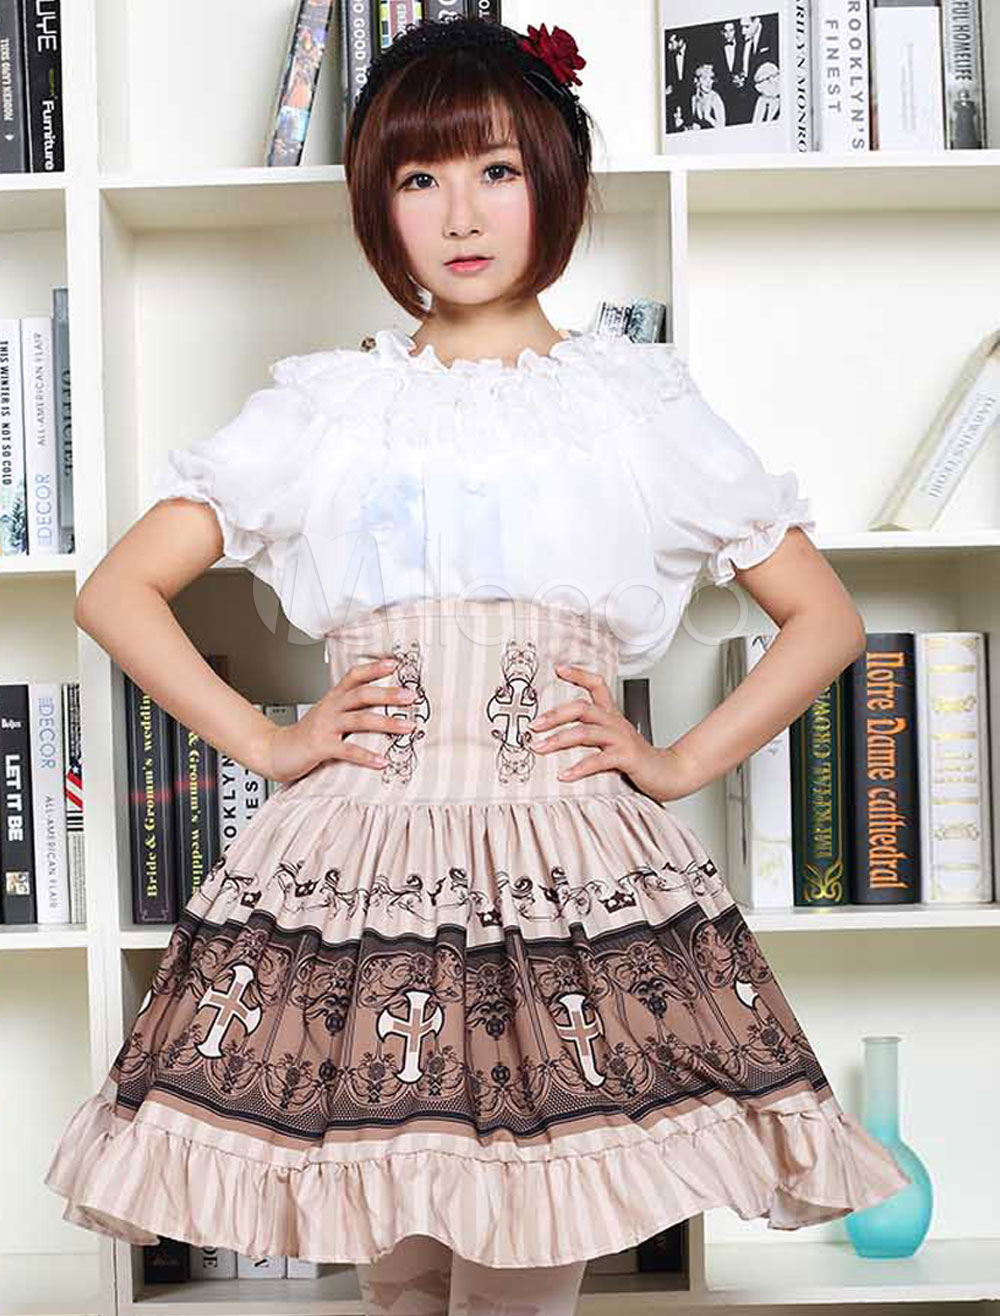 Buy Sweet Lolita Dress SK Chocolate Lolita Dress High Waist Printed Pleated Lolita Skirt for $45.99 in Milanoo store